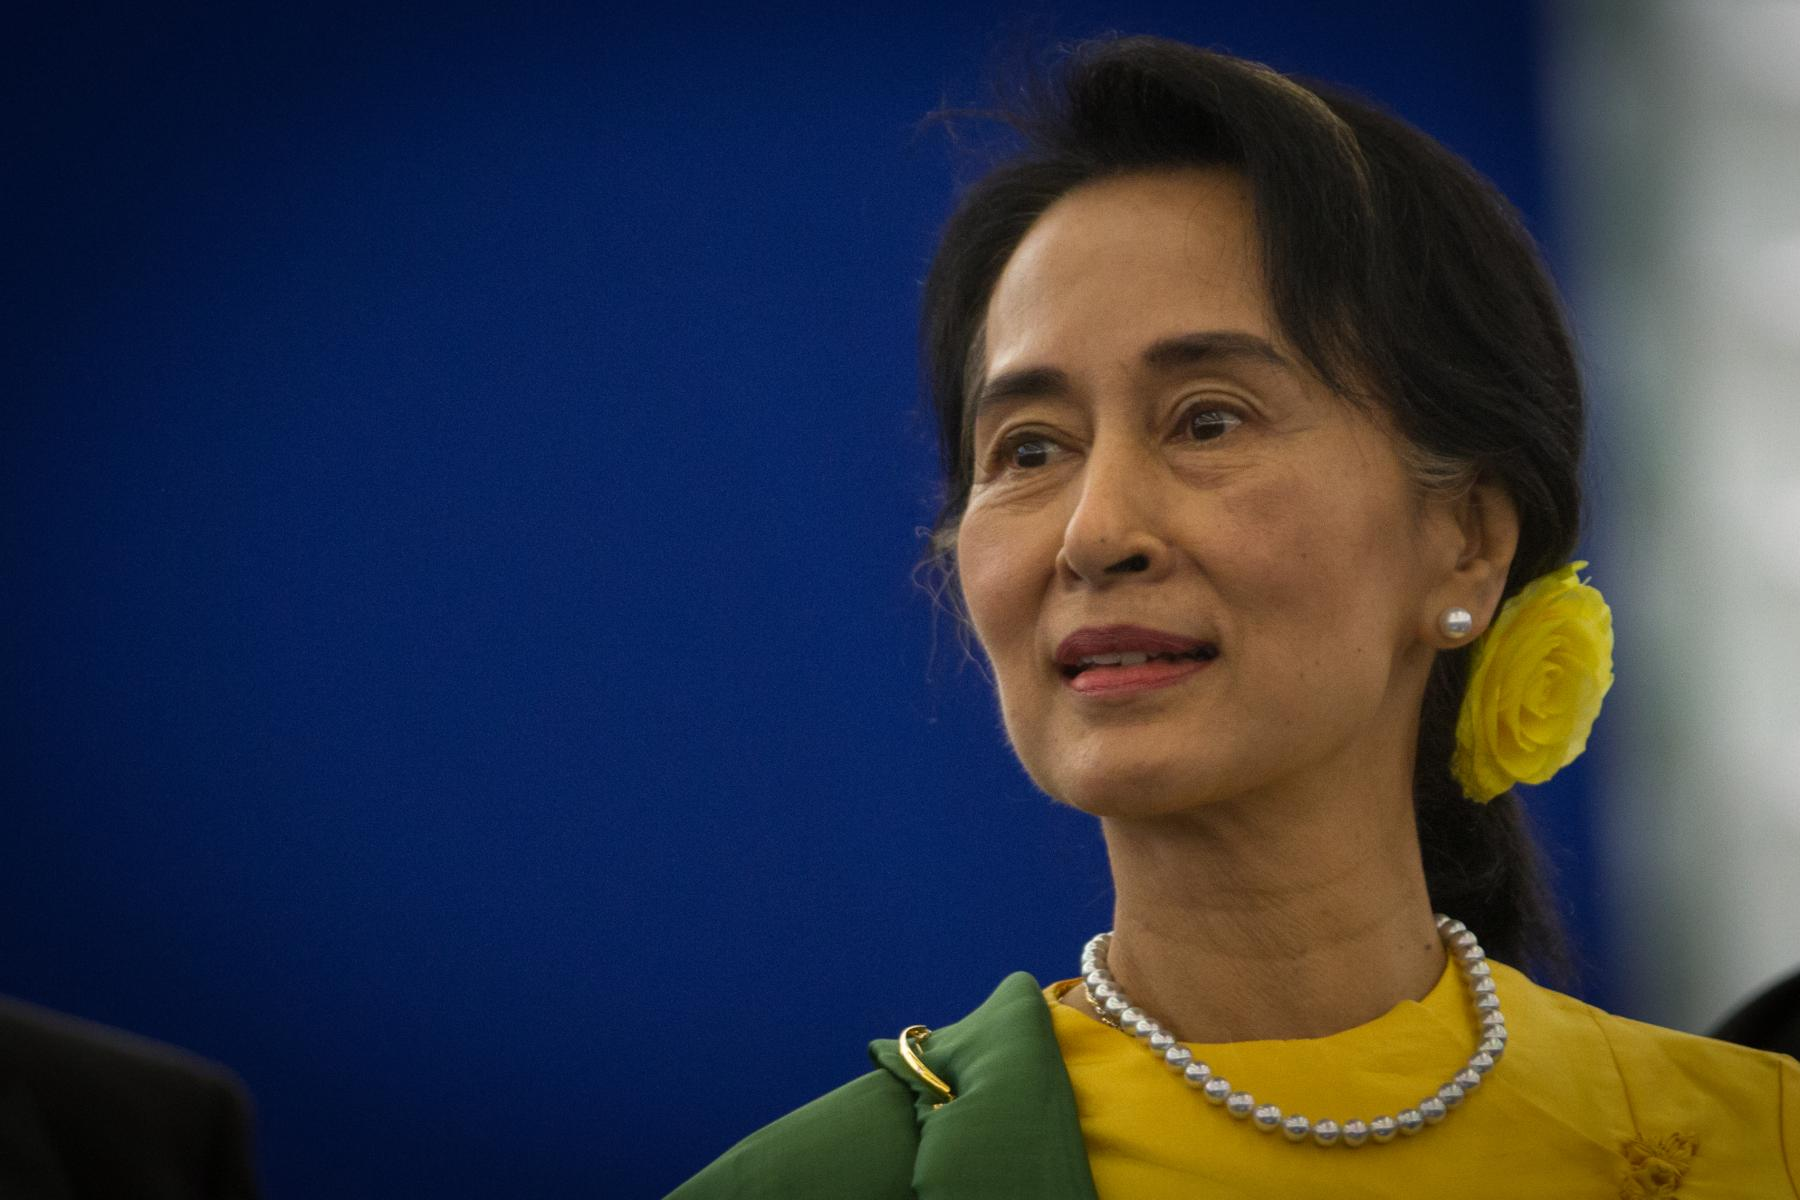 aung san suu kyi leading the burmese democracy movement tavaana aung san suu kyi leading the burmese democracy movement